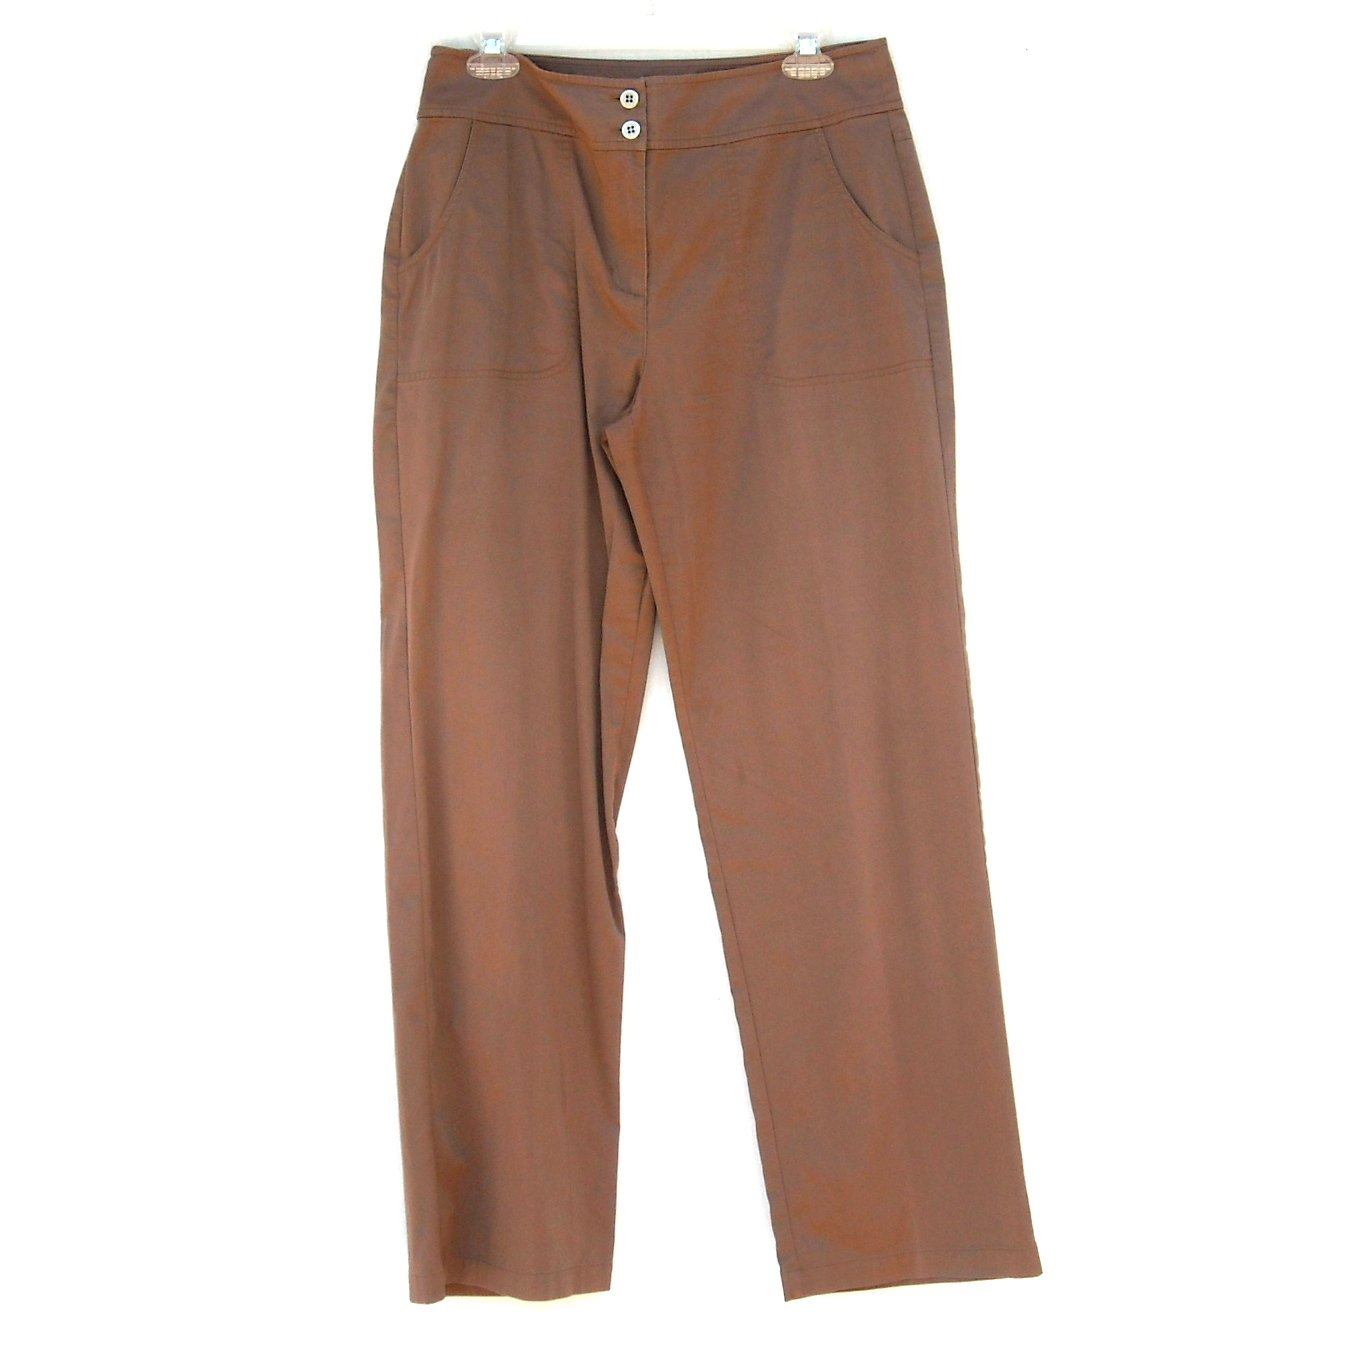 Chicos Misses Brown Casual Pants Size 1.5